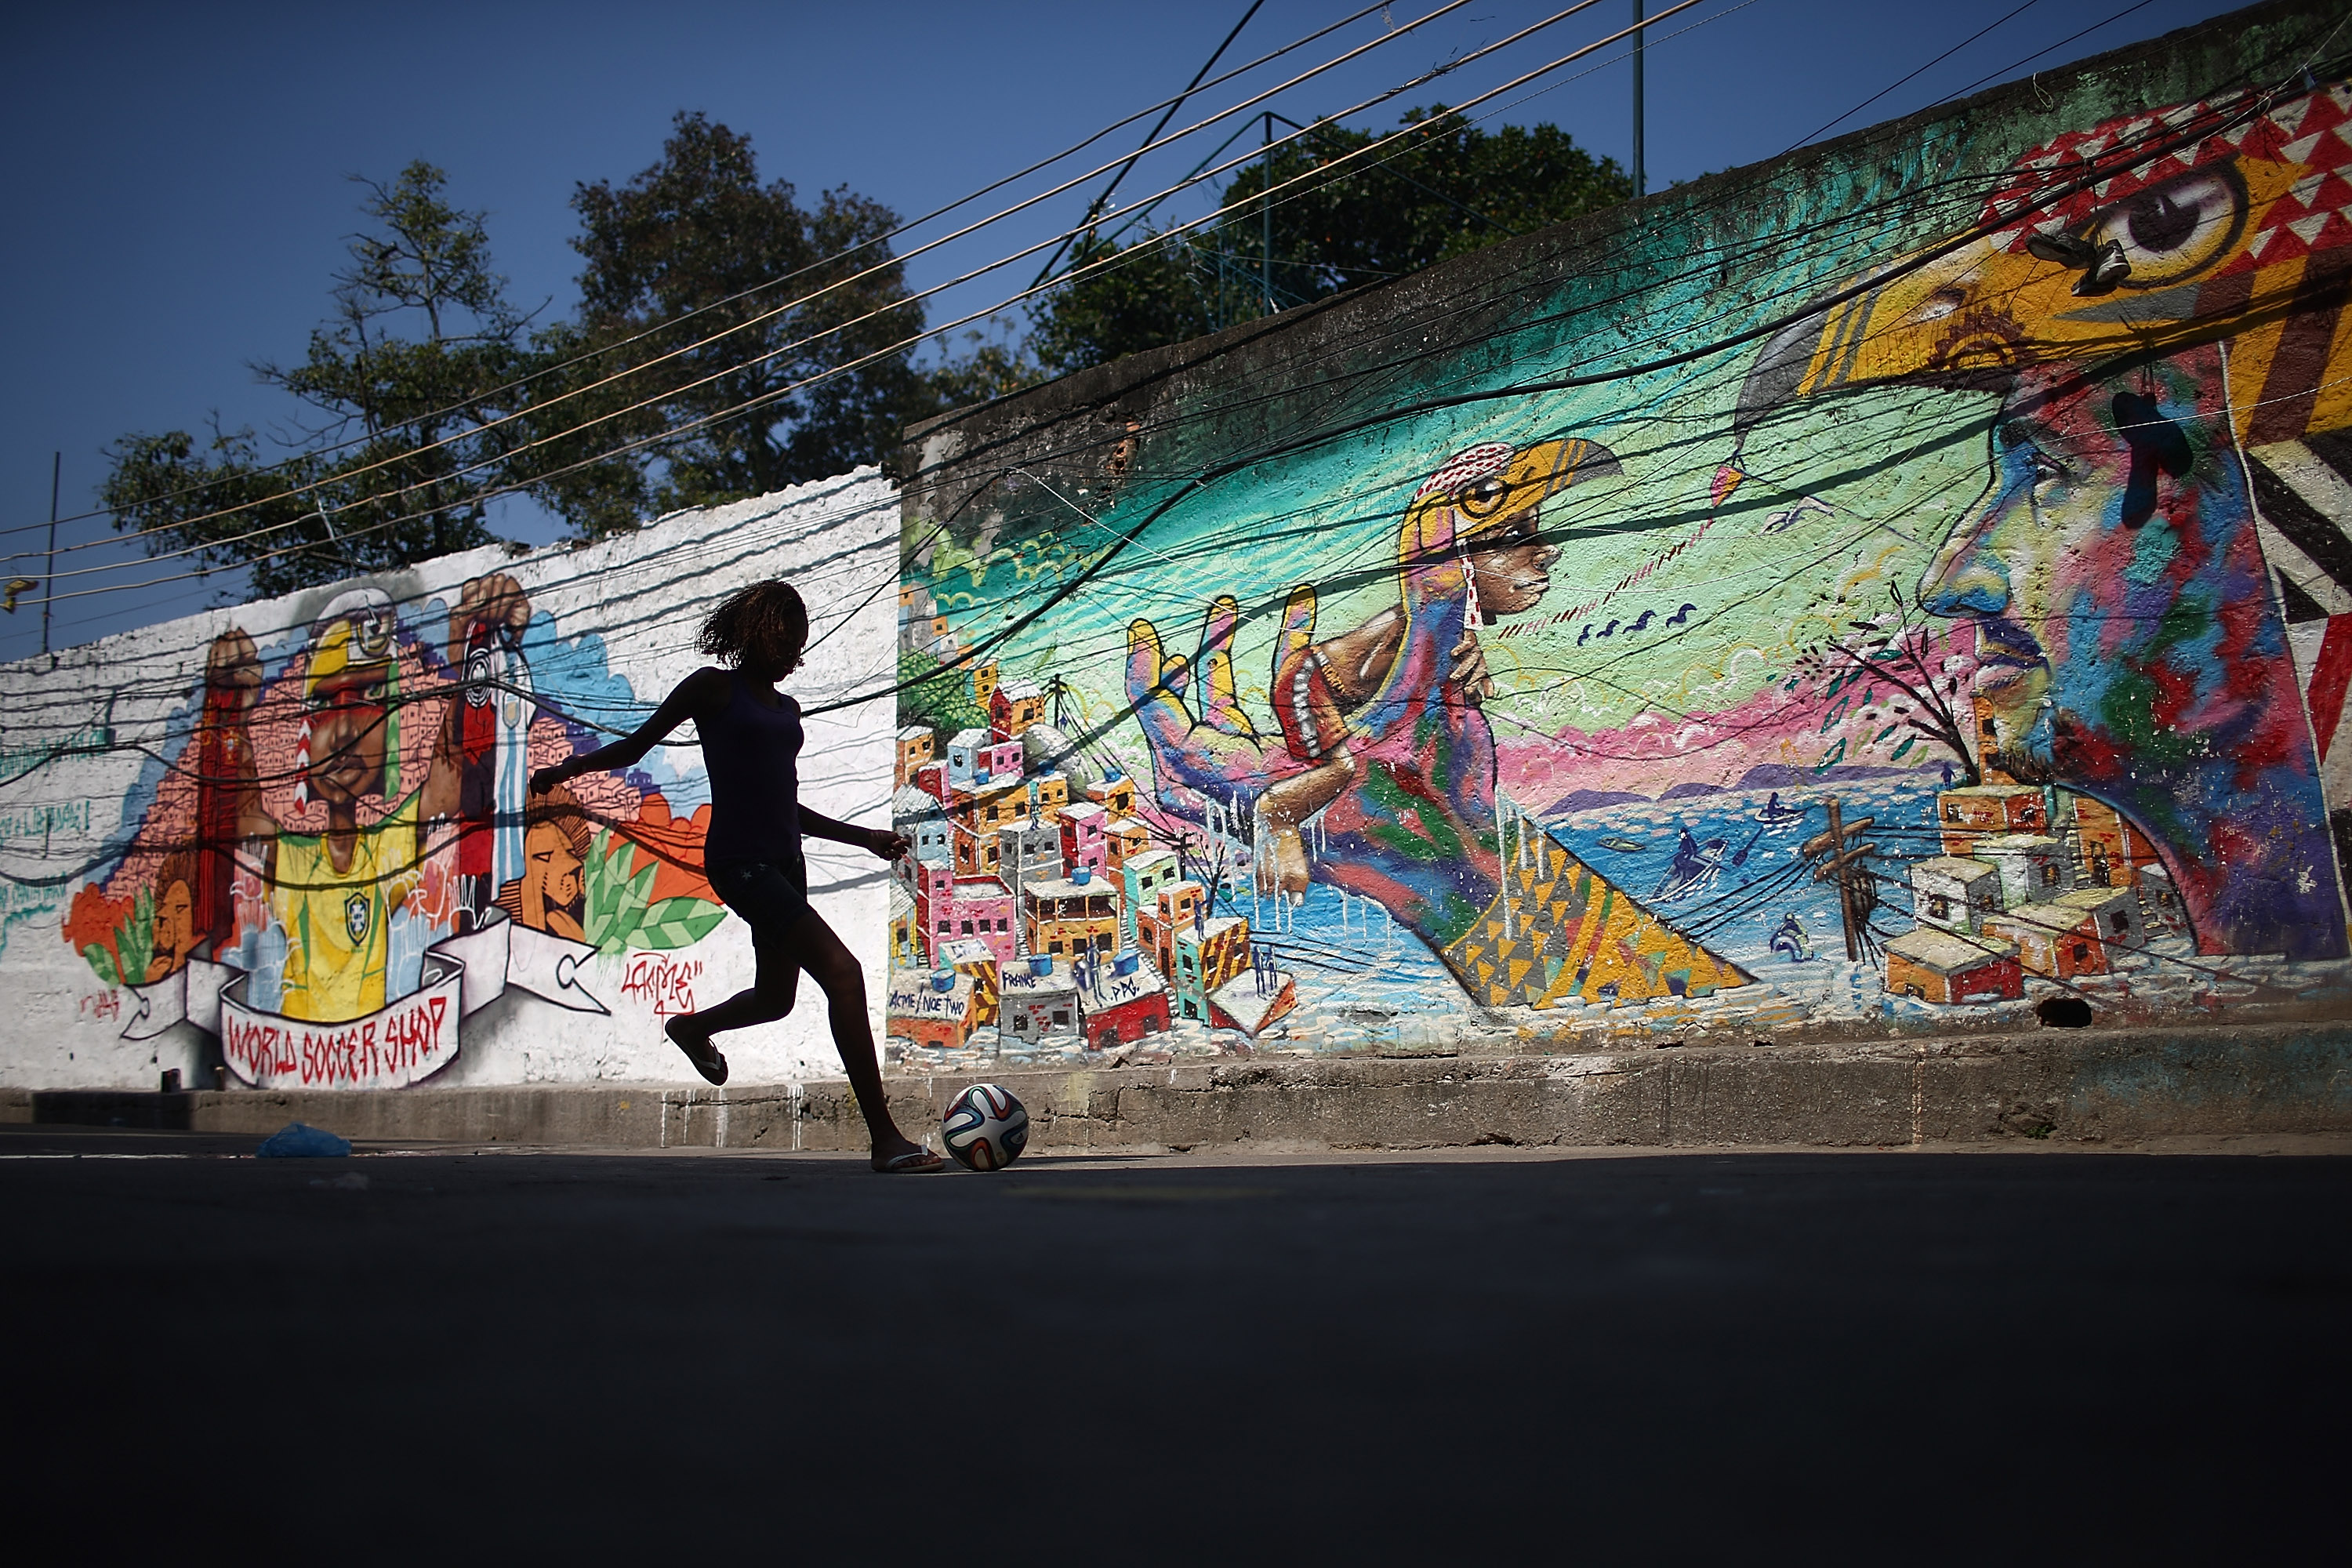 A girl plays soccer in front of graffiti created by acclaimed local graffiti artist Acme in the pacified Pavao-Pavaozinho community, on May 8, 2014 in Rio de Janeiro.